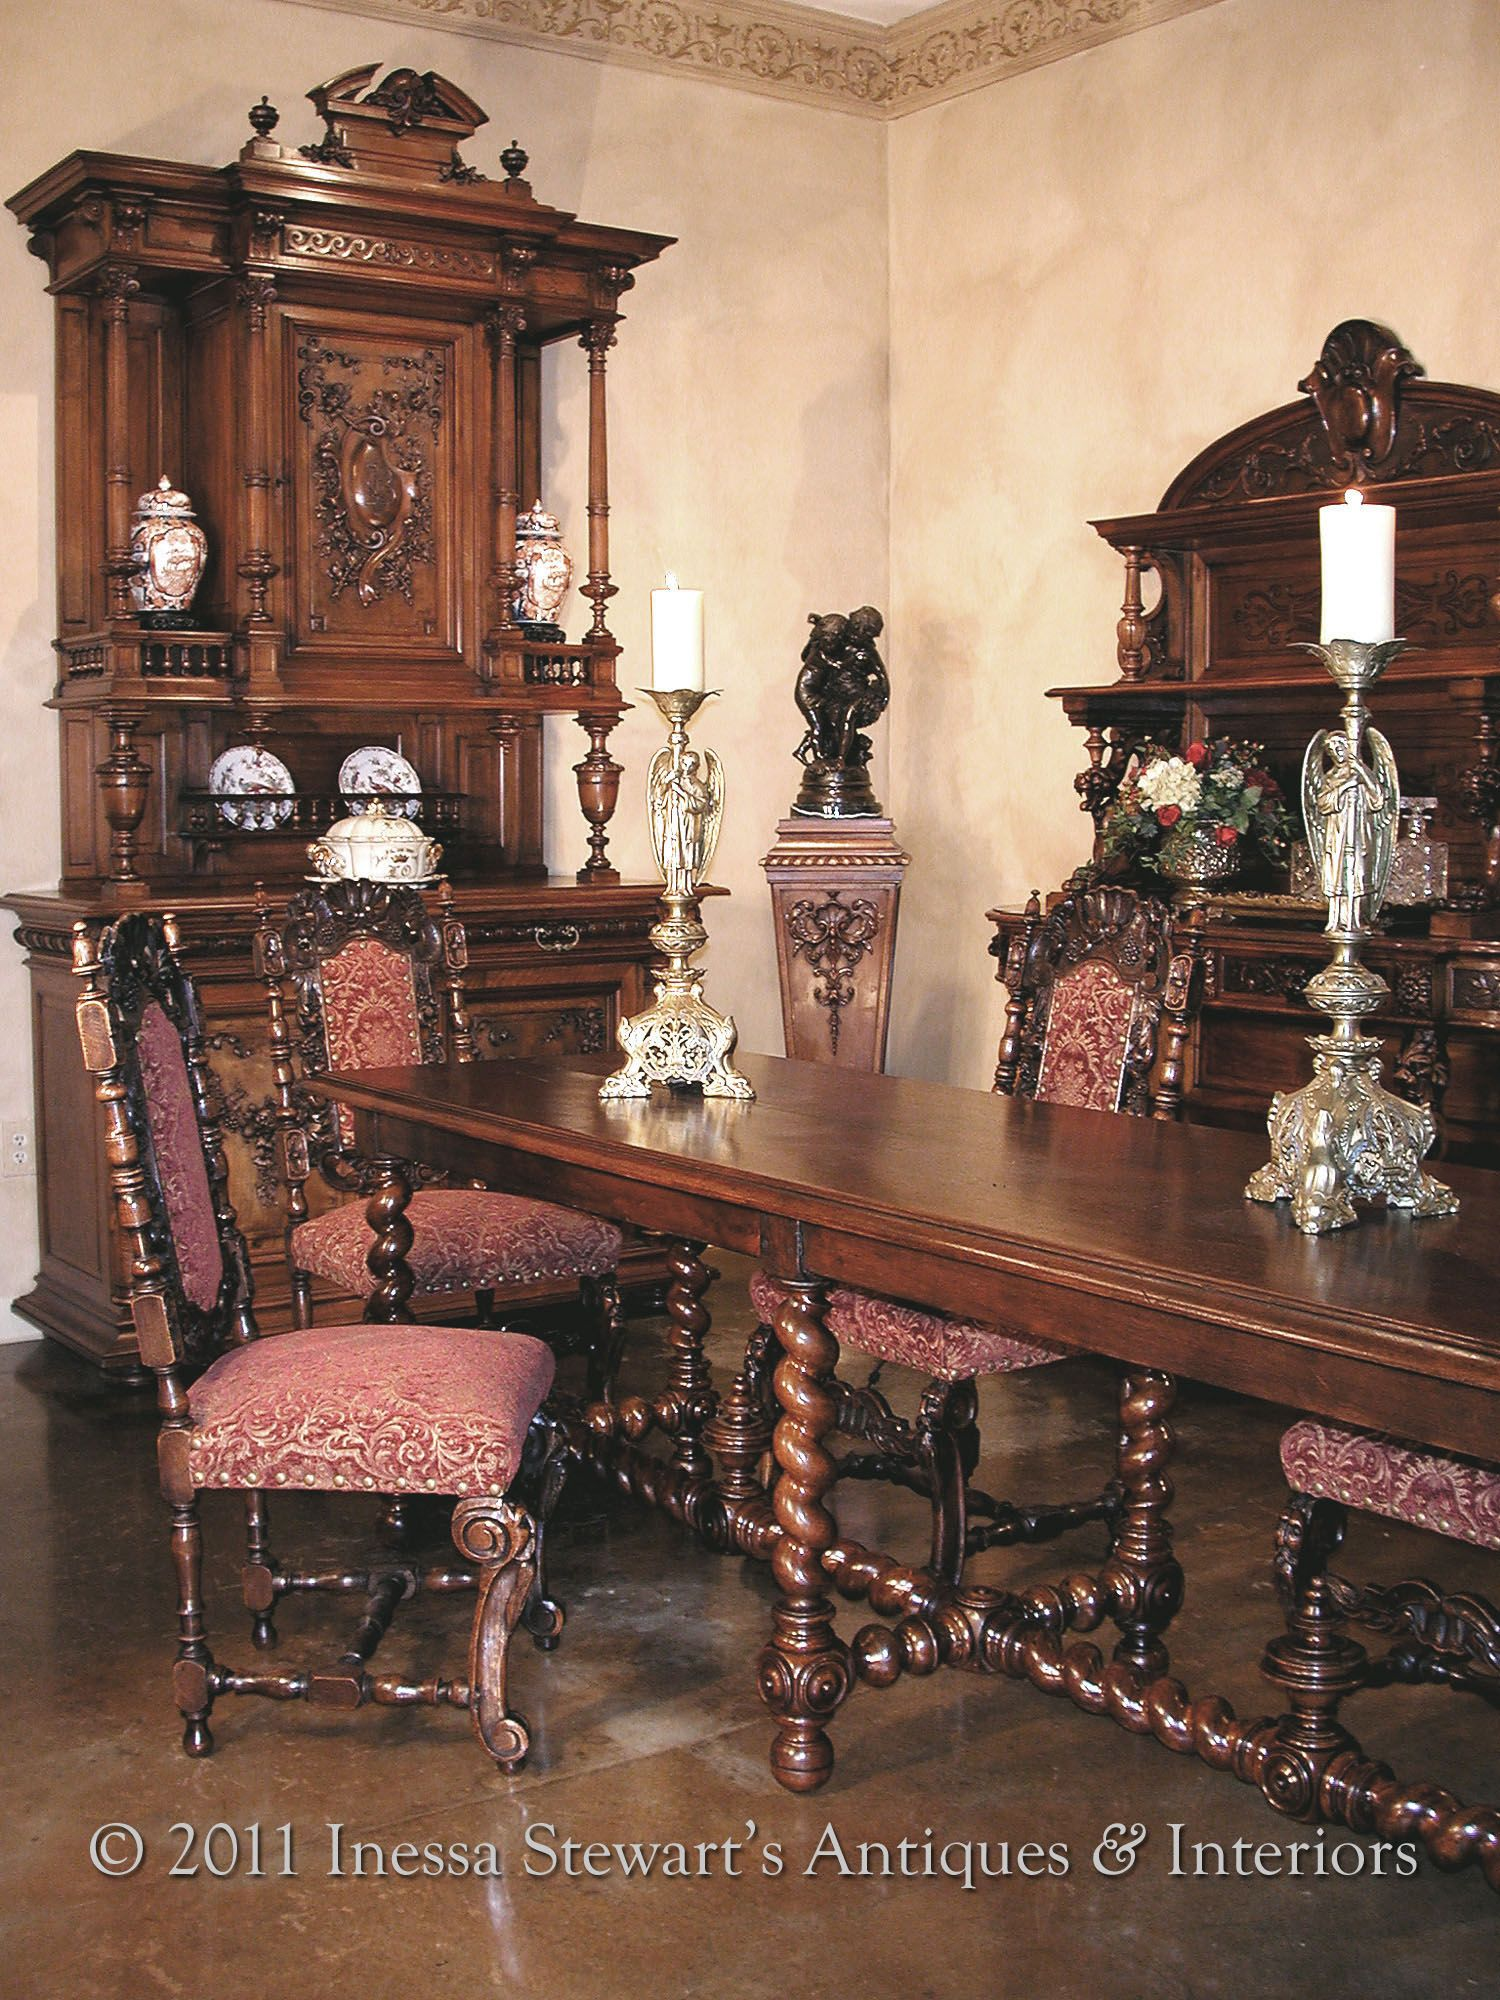 Antique furniture bedroom - Antique Renaissance Style Dining Room To Most Of Us Antique French Furniture Means Furnishings